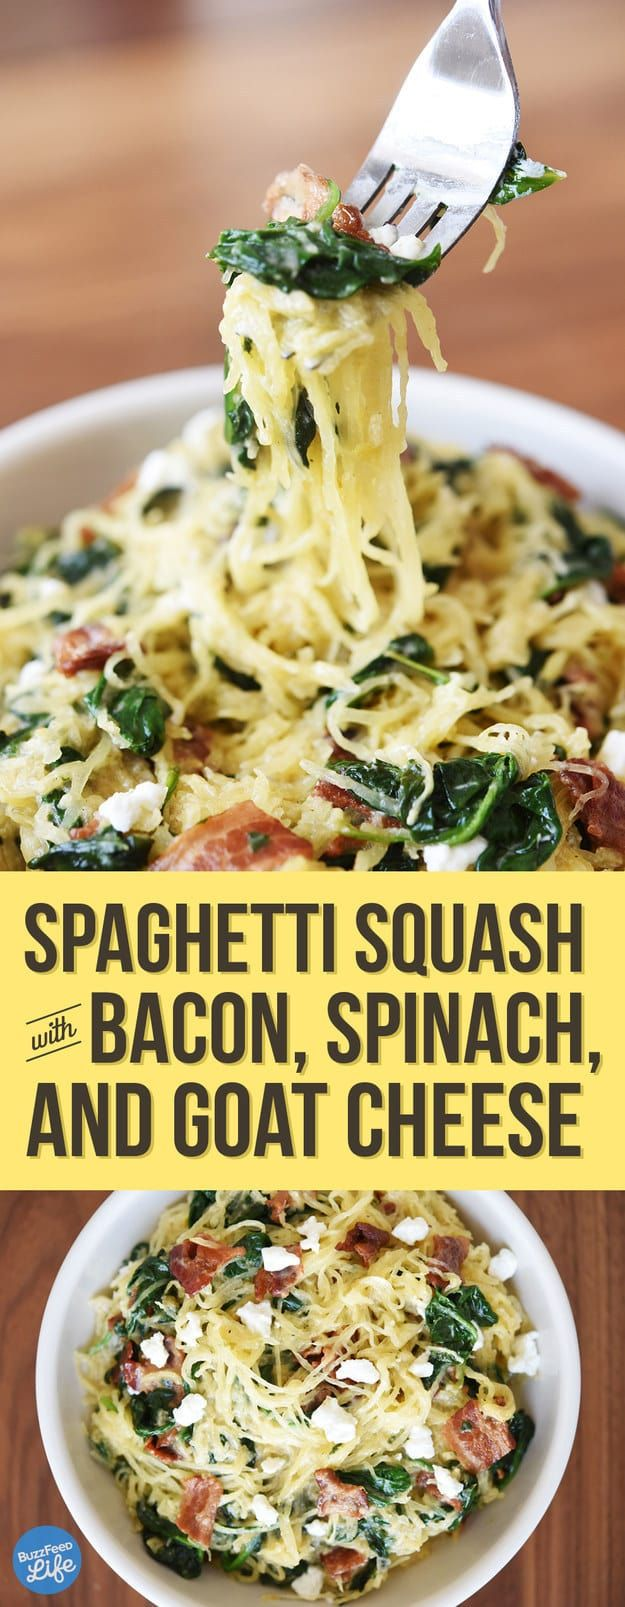 1 medium spaghetti squash    1 tablespoon olive oil    kosher salt and freshly ground pepper    6 slices bacon, cut in 1-inch pieces    1 tablespoon red wine vinegar    1 tablespoon maple syrup    1 5-ounce bag baby spinach    2 ounces soft goat cheese, crumbled